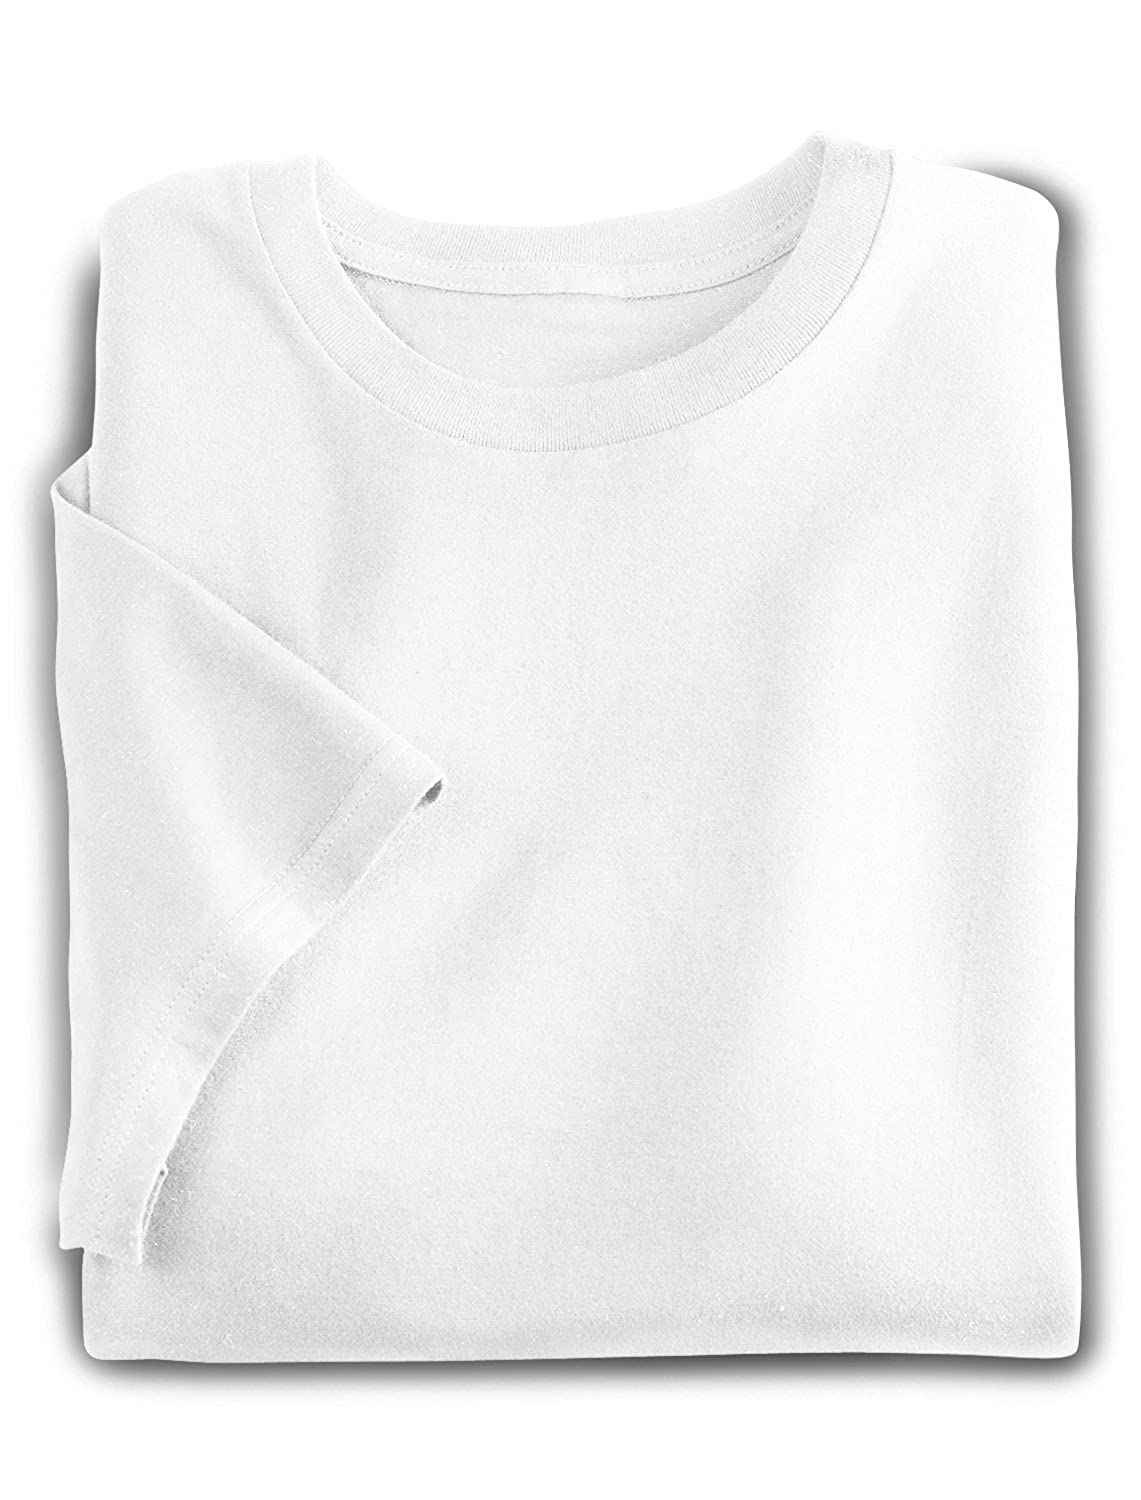 Harbor Bay DXL Big and Tall 2-Pack Crewneck T-Shirts White)